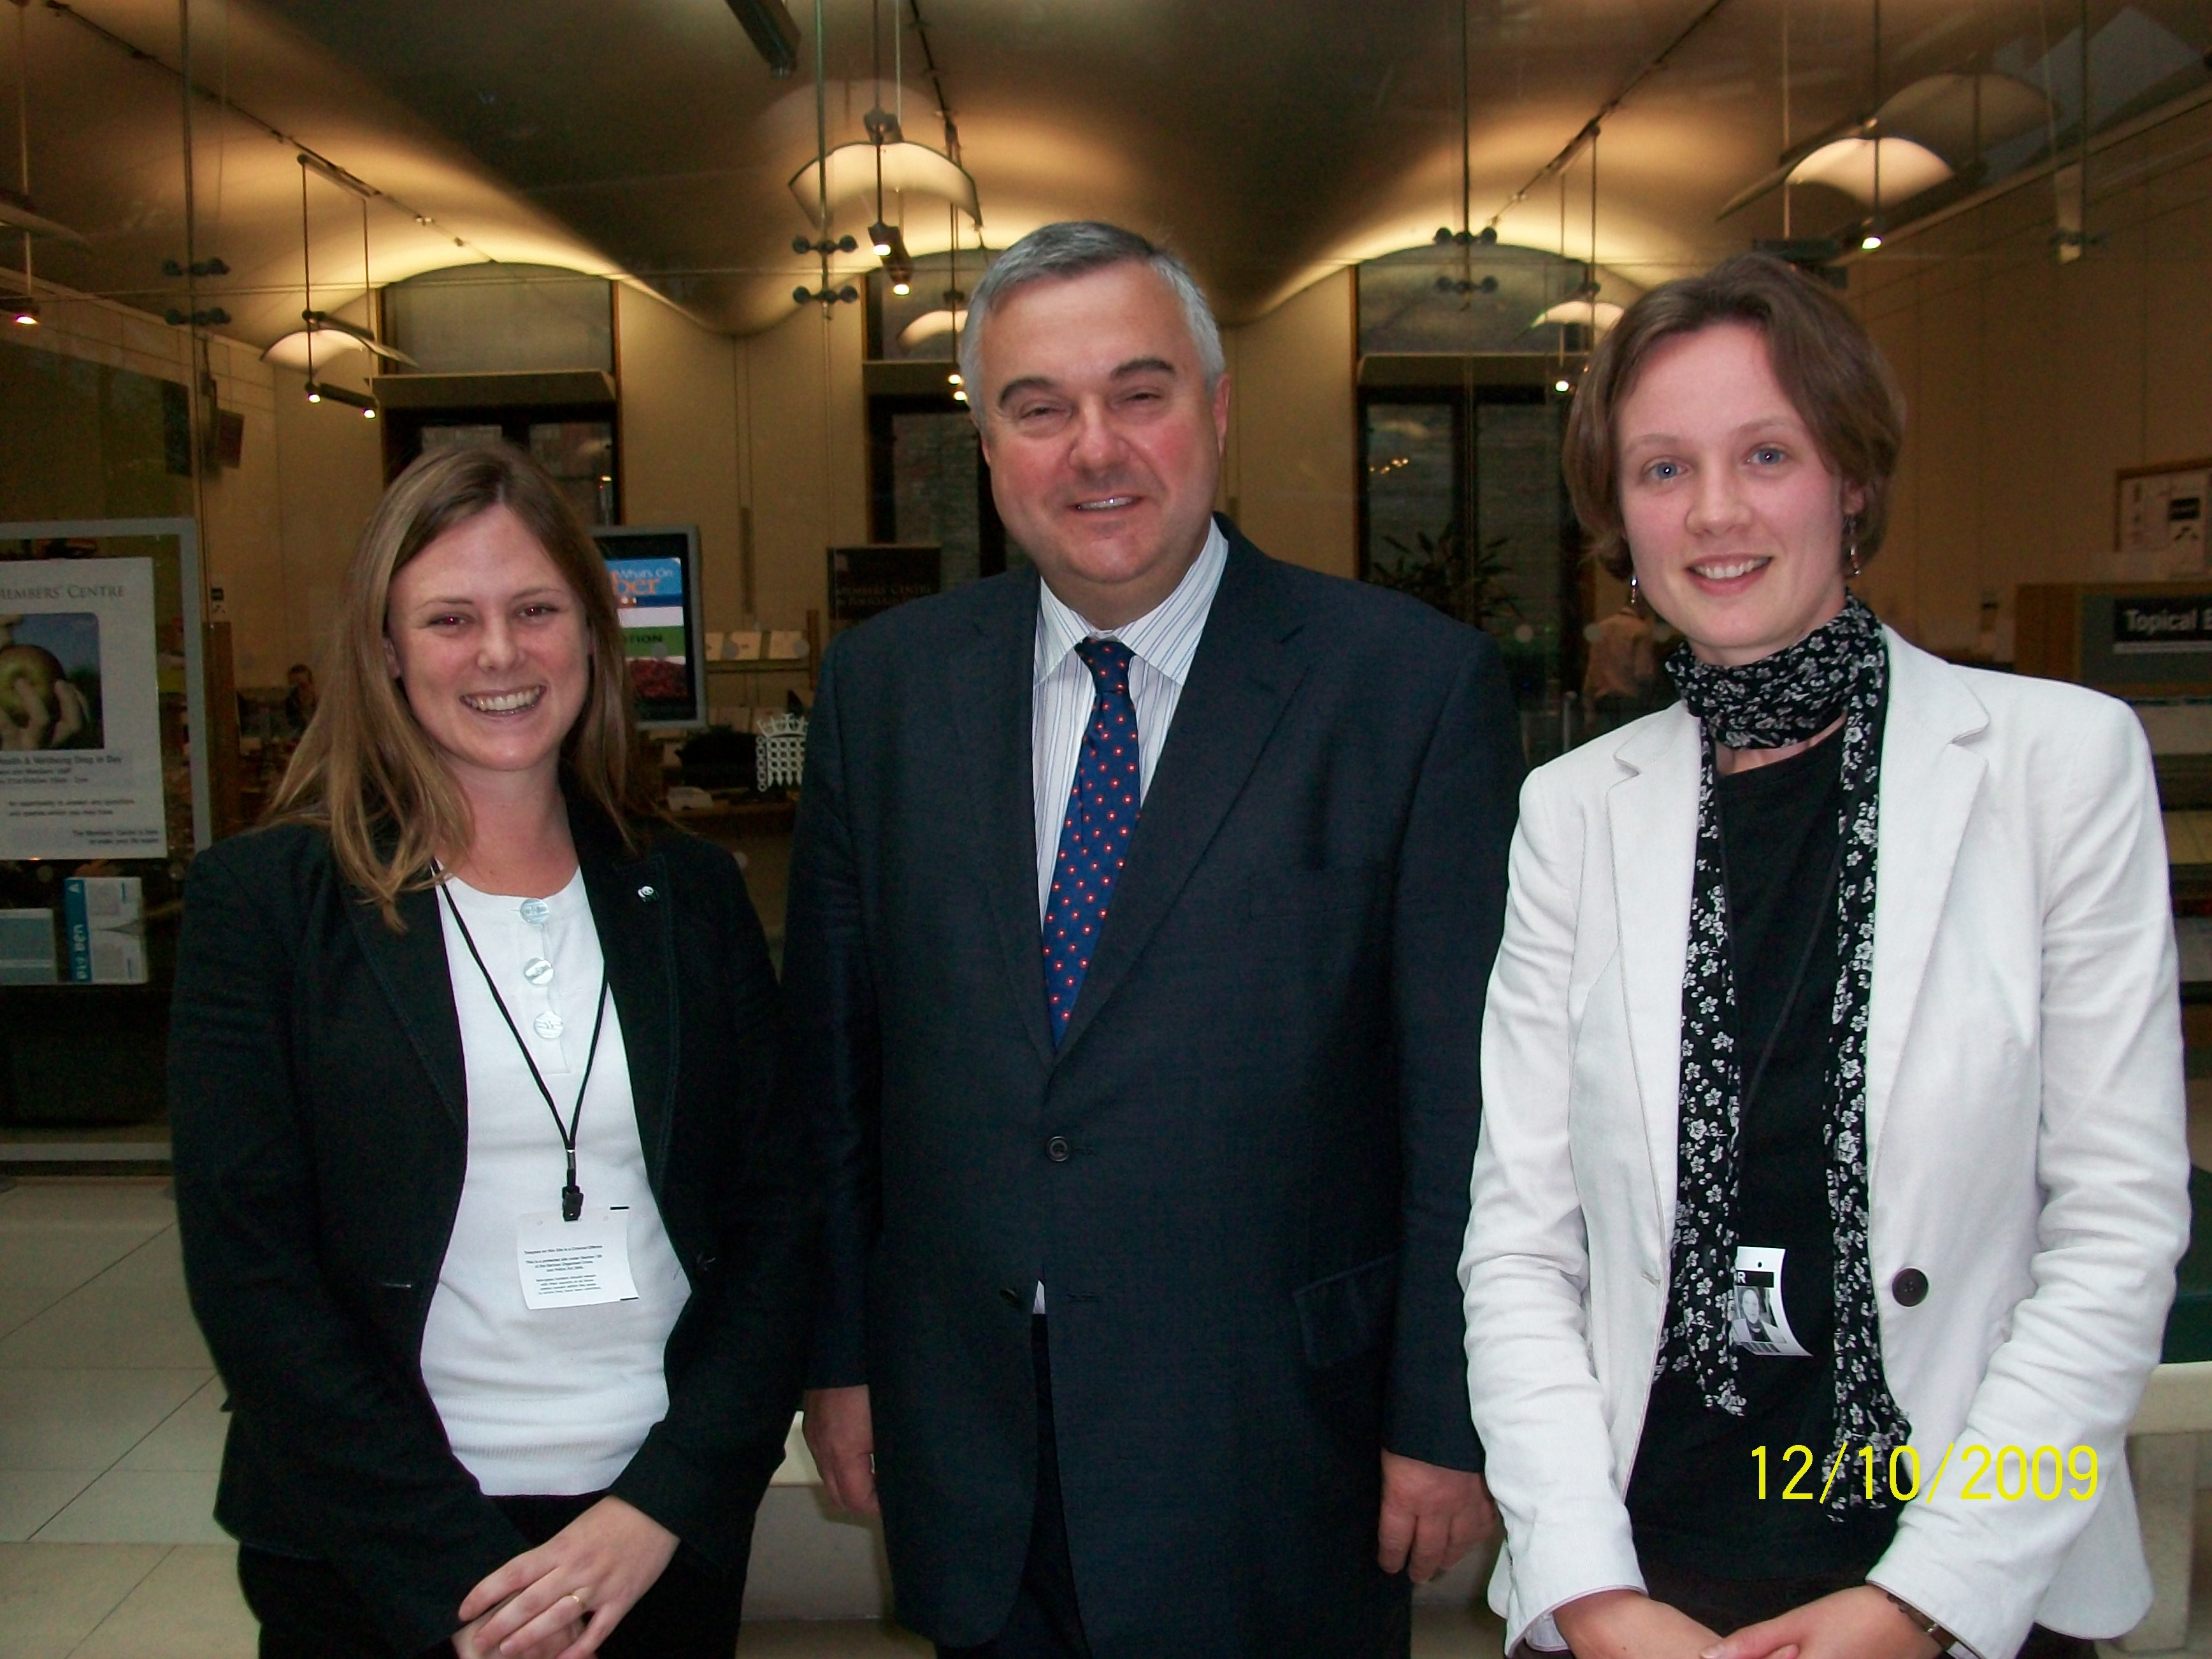 Me with Rose Timlett and Eva Groeneveld of the WWF